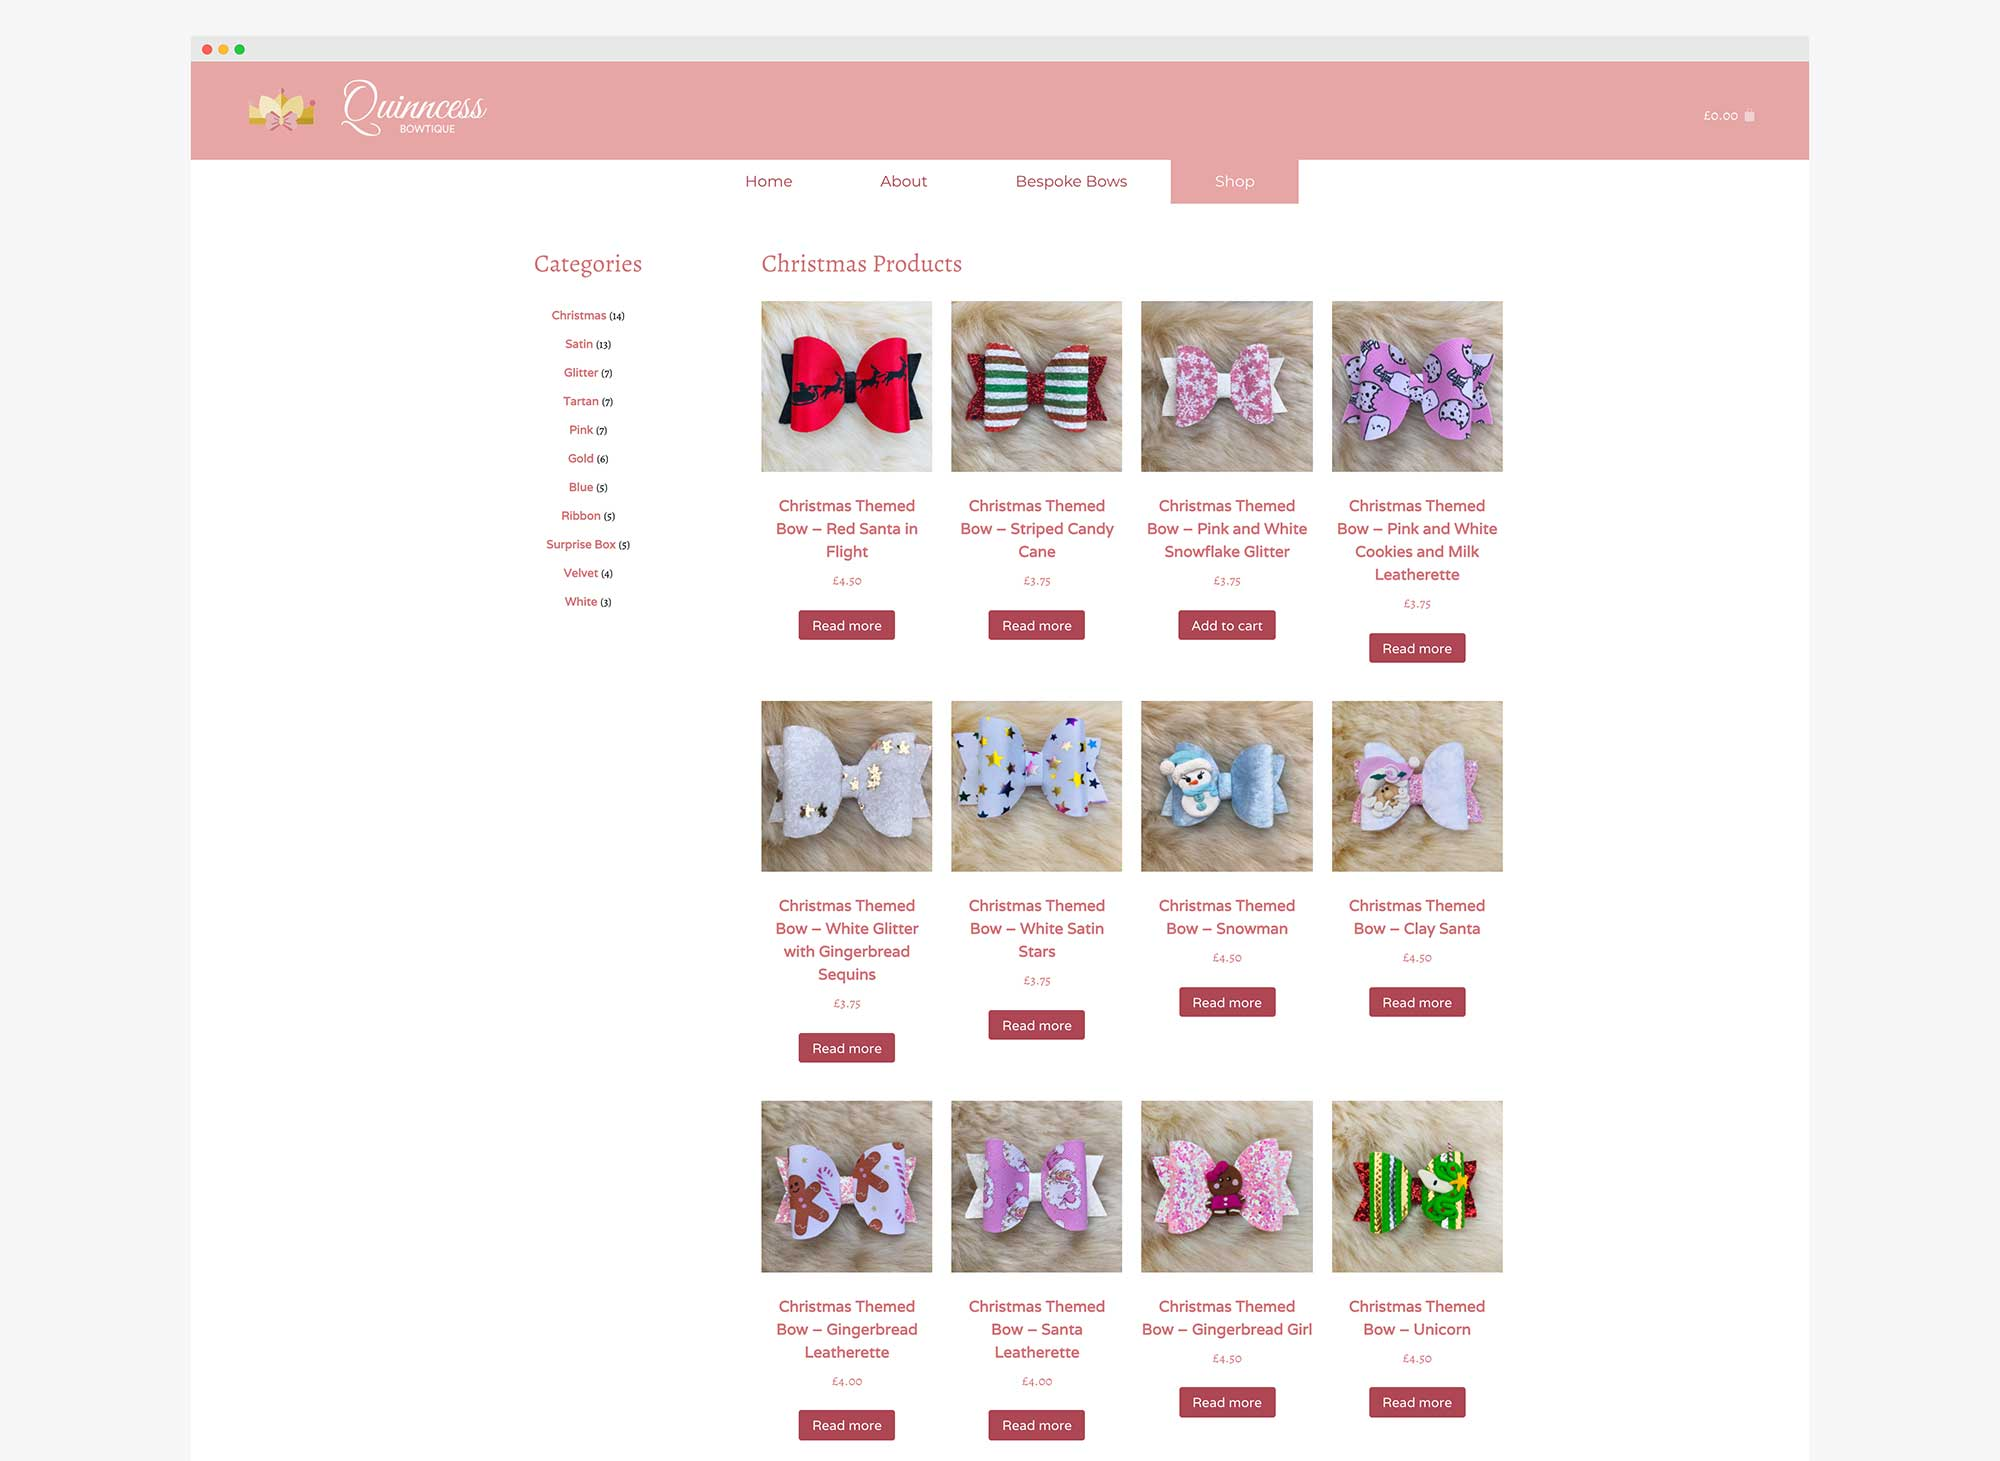 Quinncess Bowtique Ecommerce Web Design and Branding Project